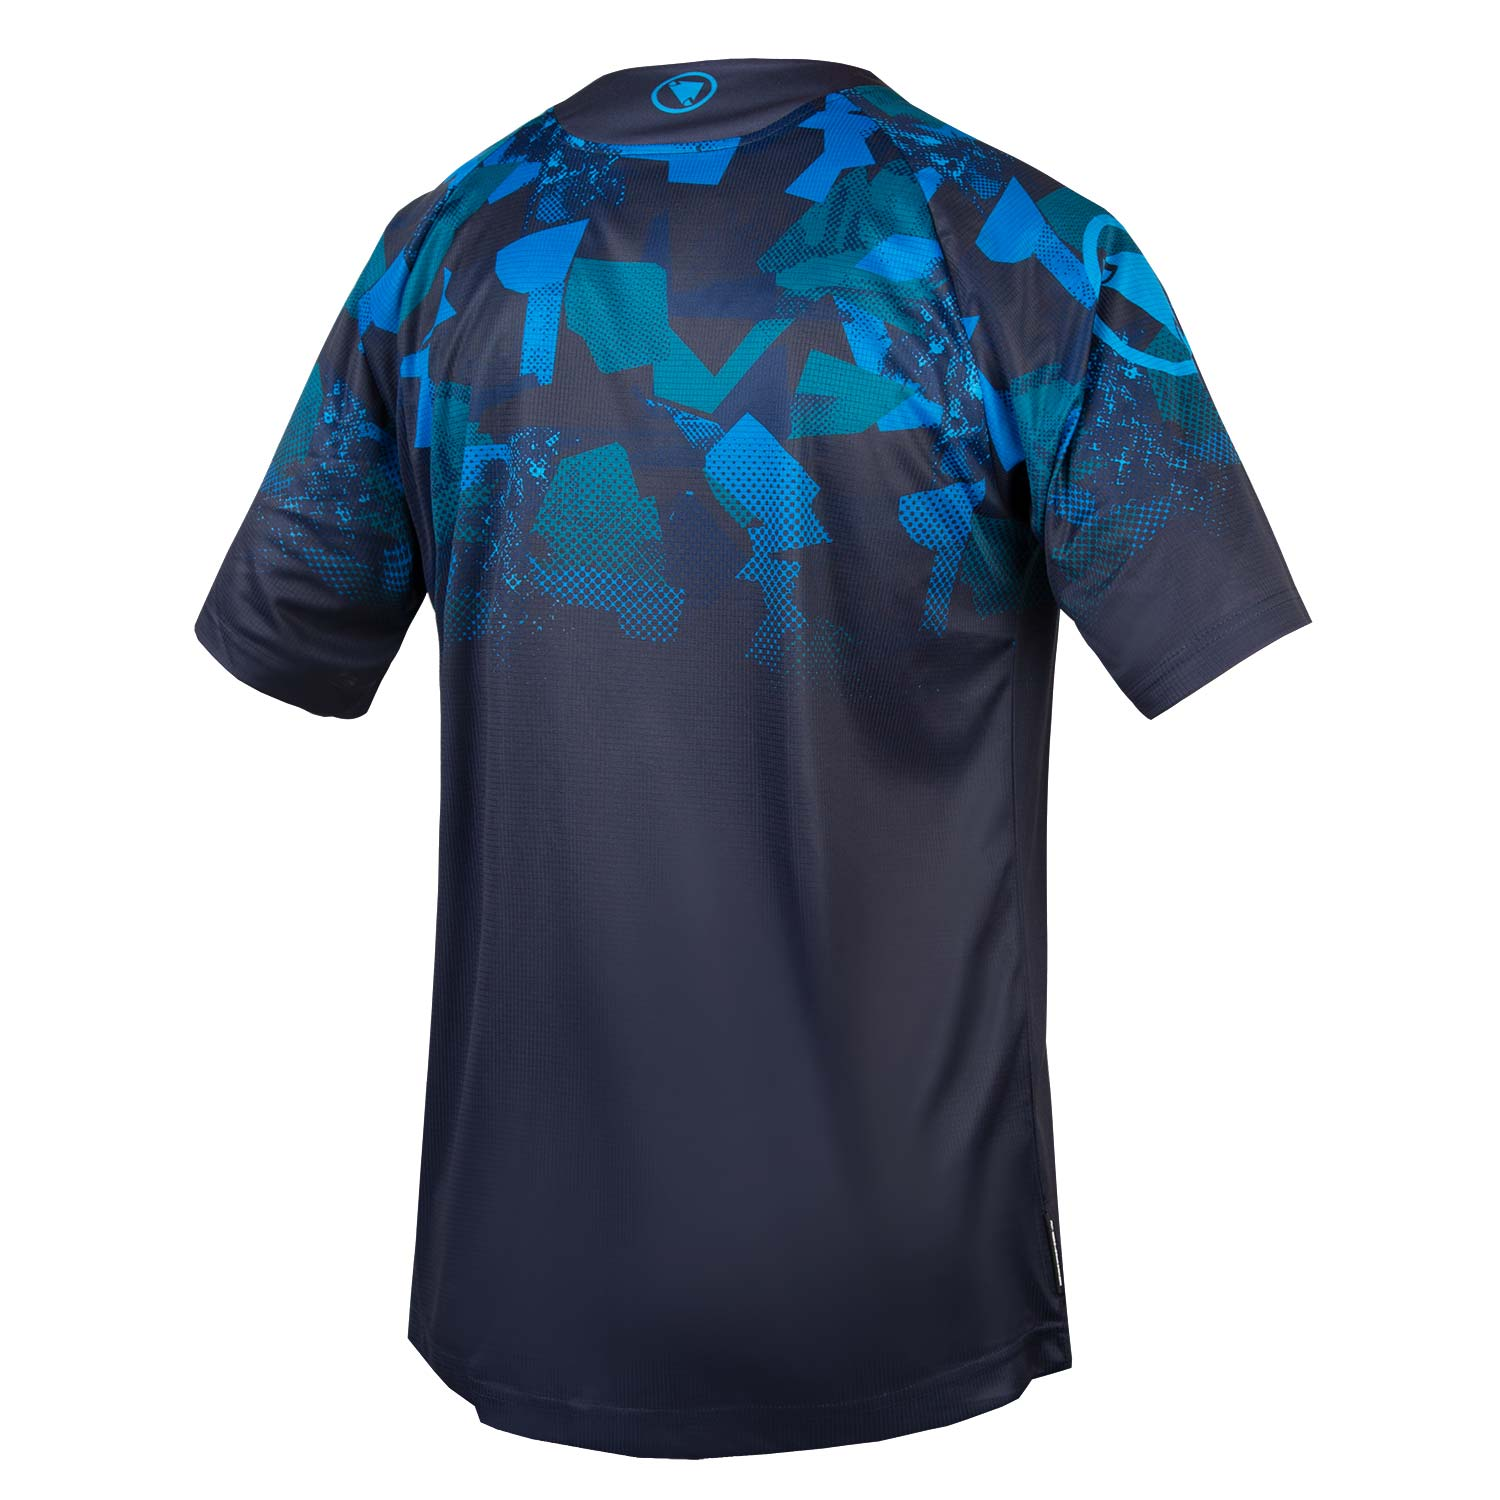 SingleTrack Print T - LTD Navy